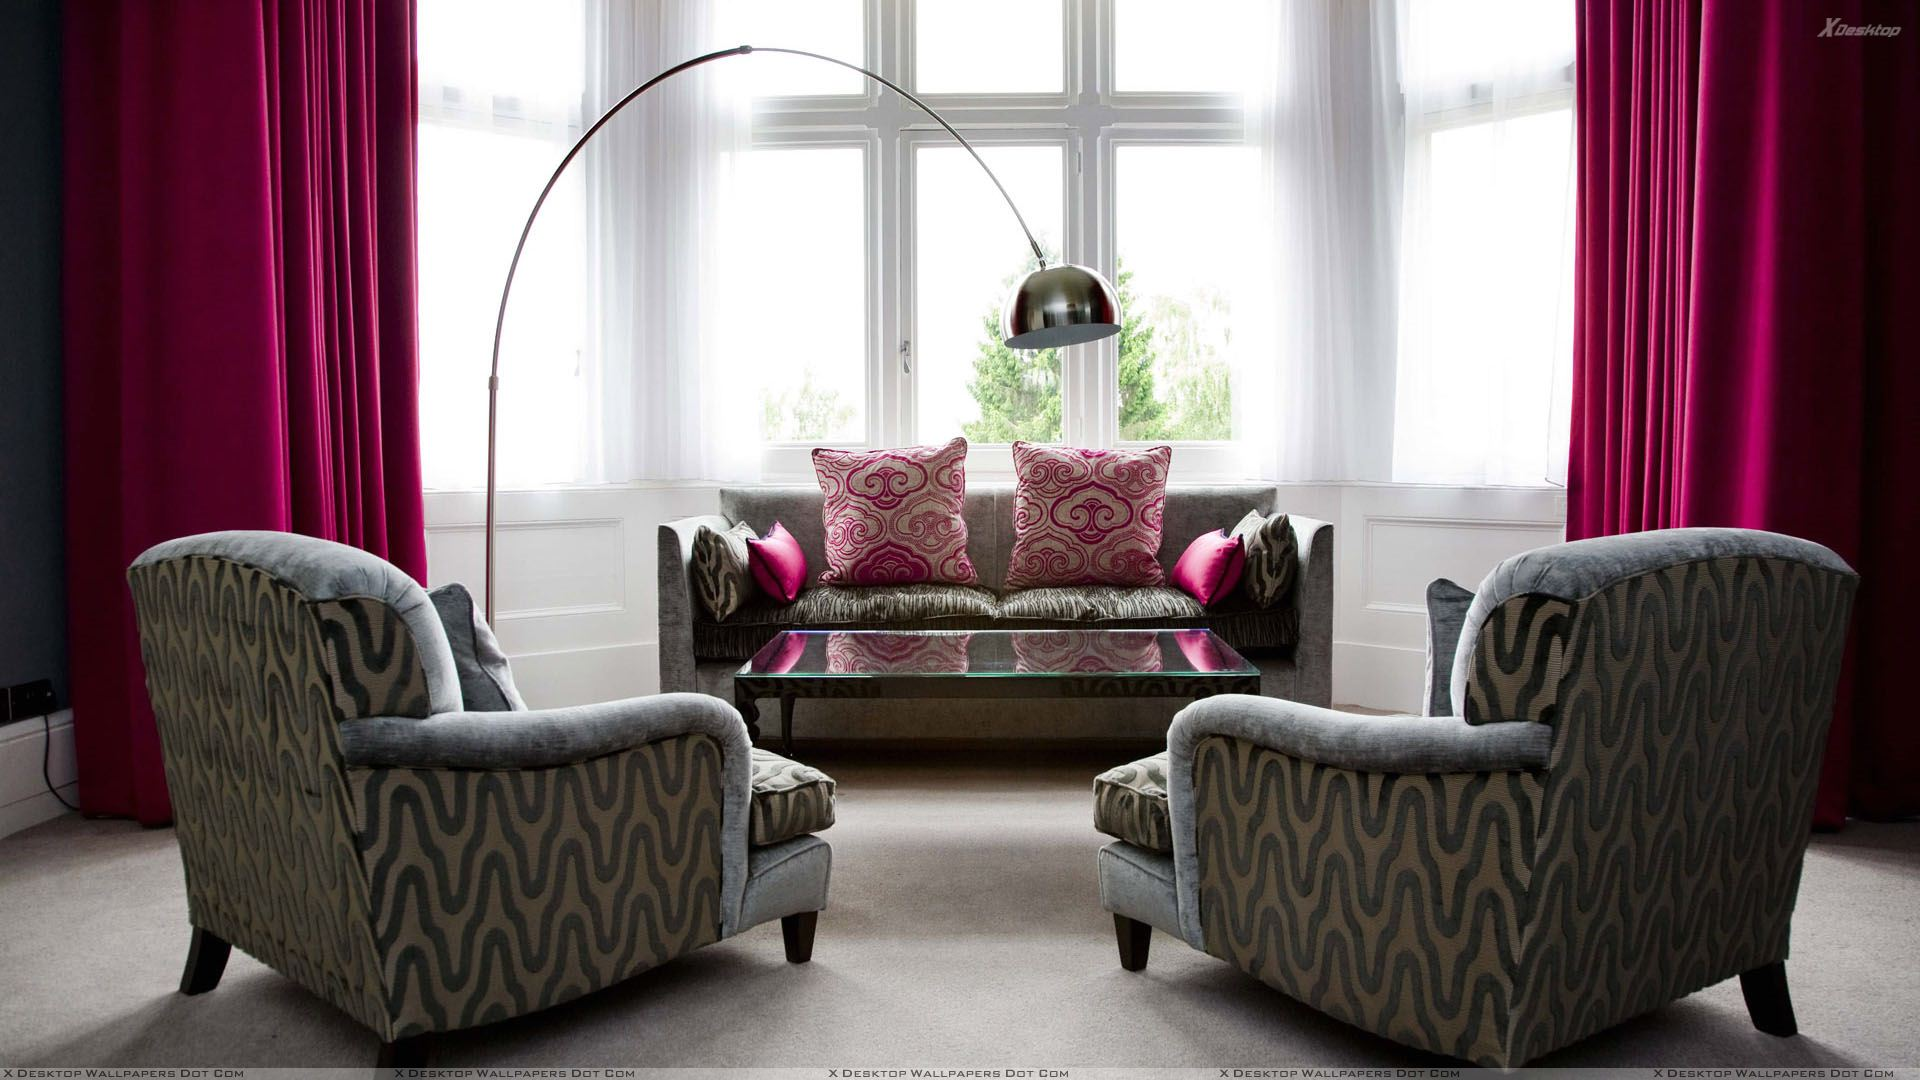 Grey Designing Sofa Set And Pink Curtains In Room Wallpaper